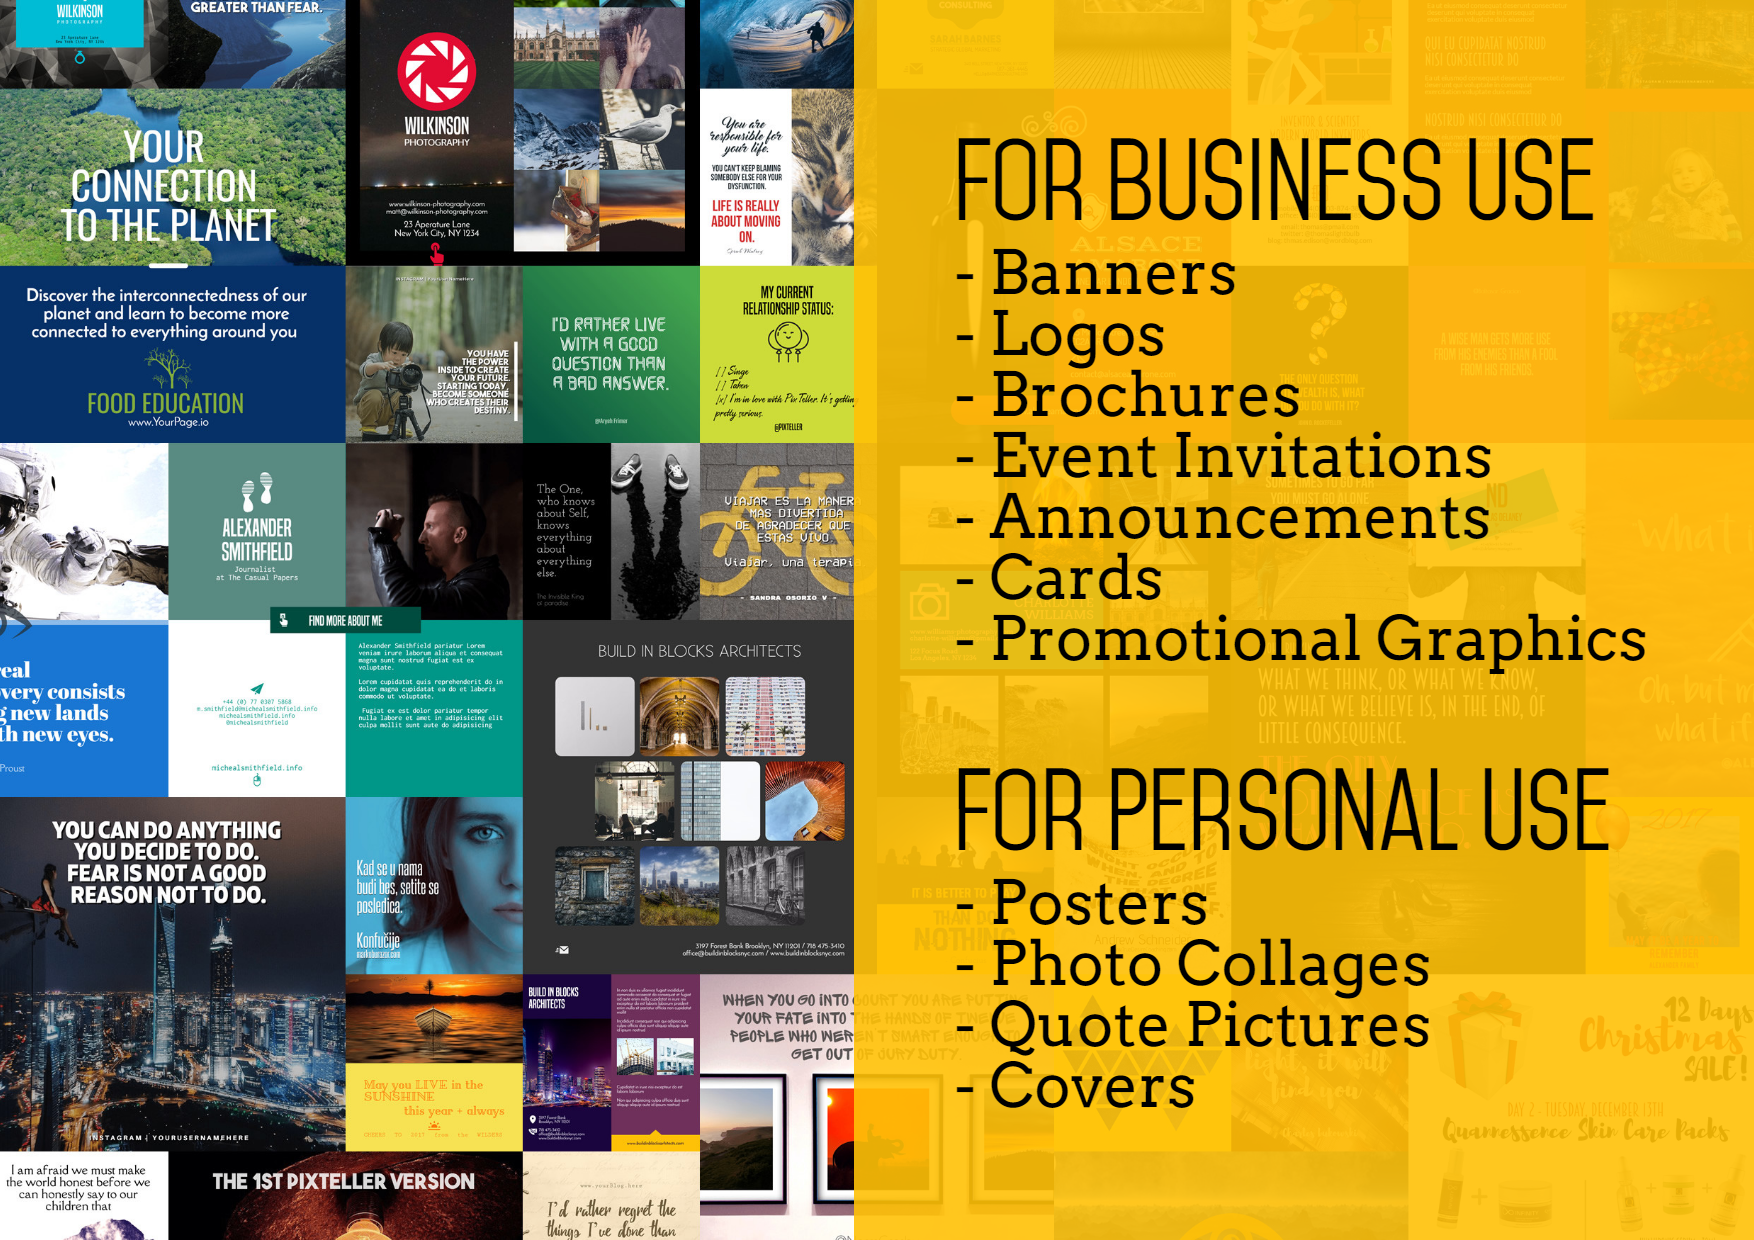 Text, Advertising, Product, Display, Business, PixTeller, Slide5, Black, Yellow,  Free Image